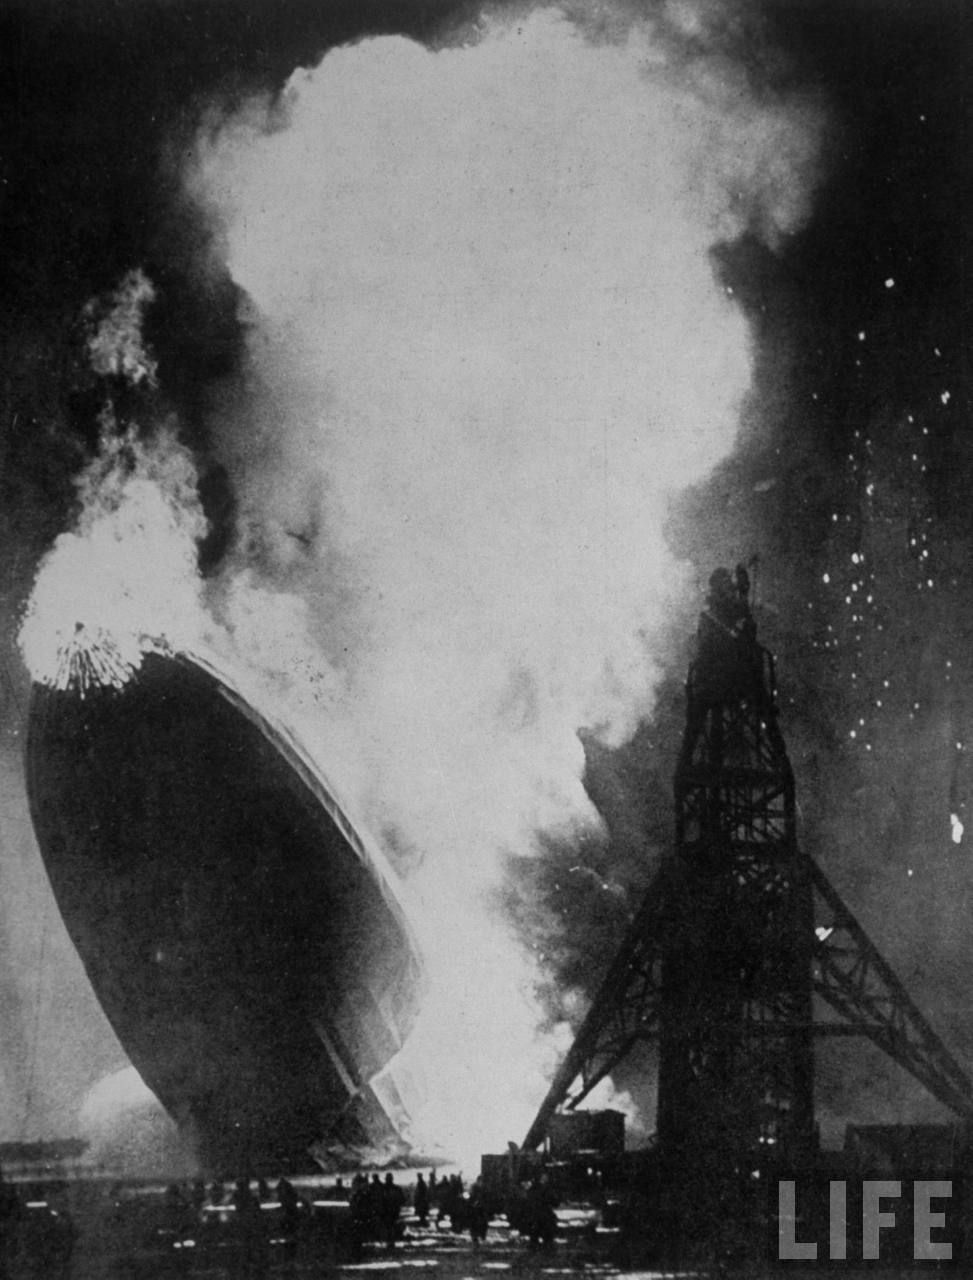 The Hindenburg explosion - an amazing photo